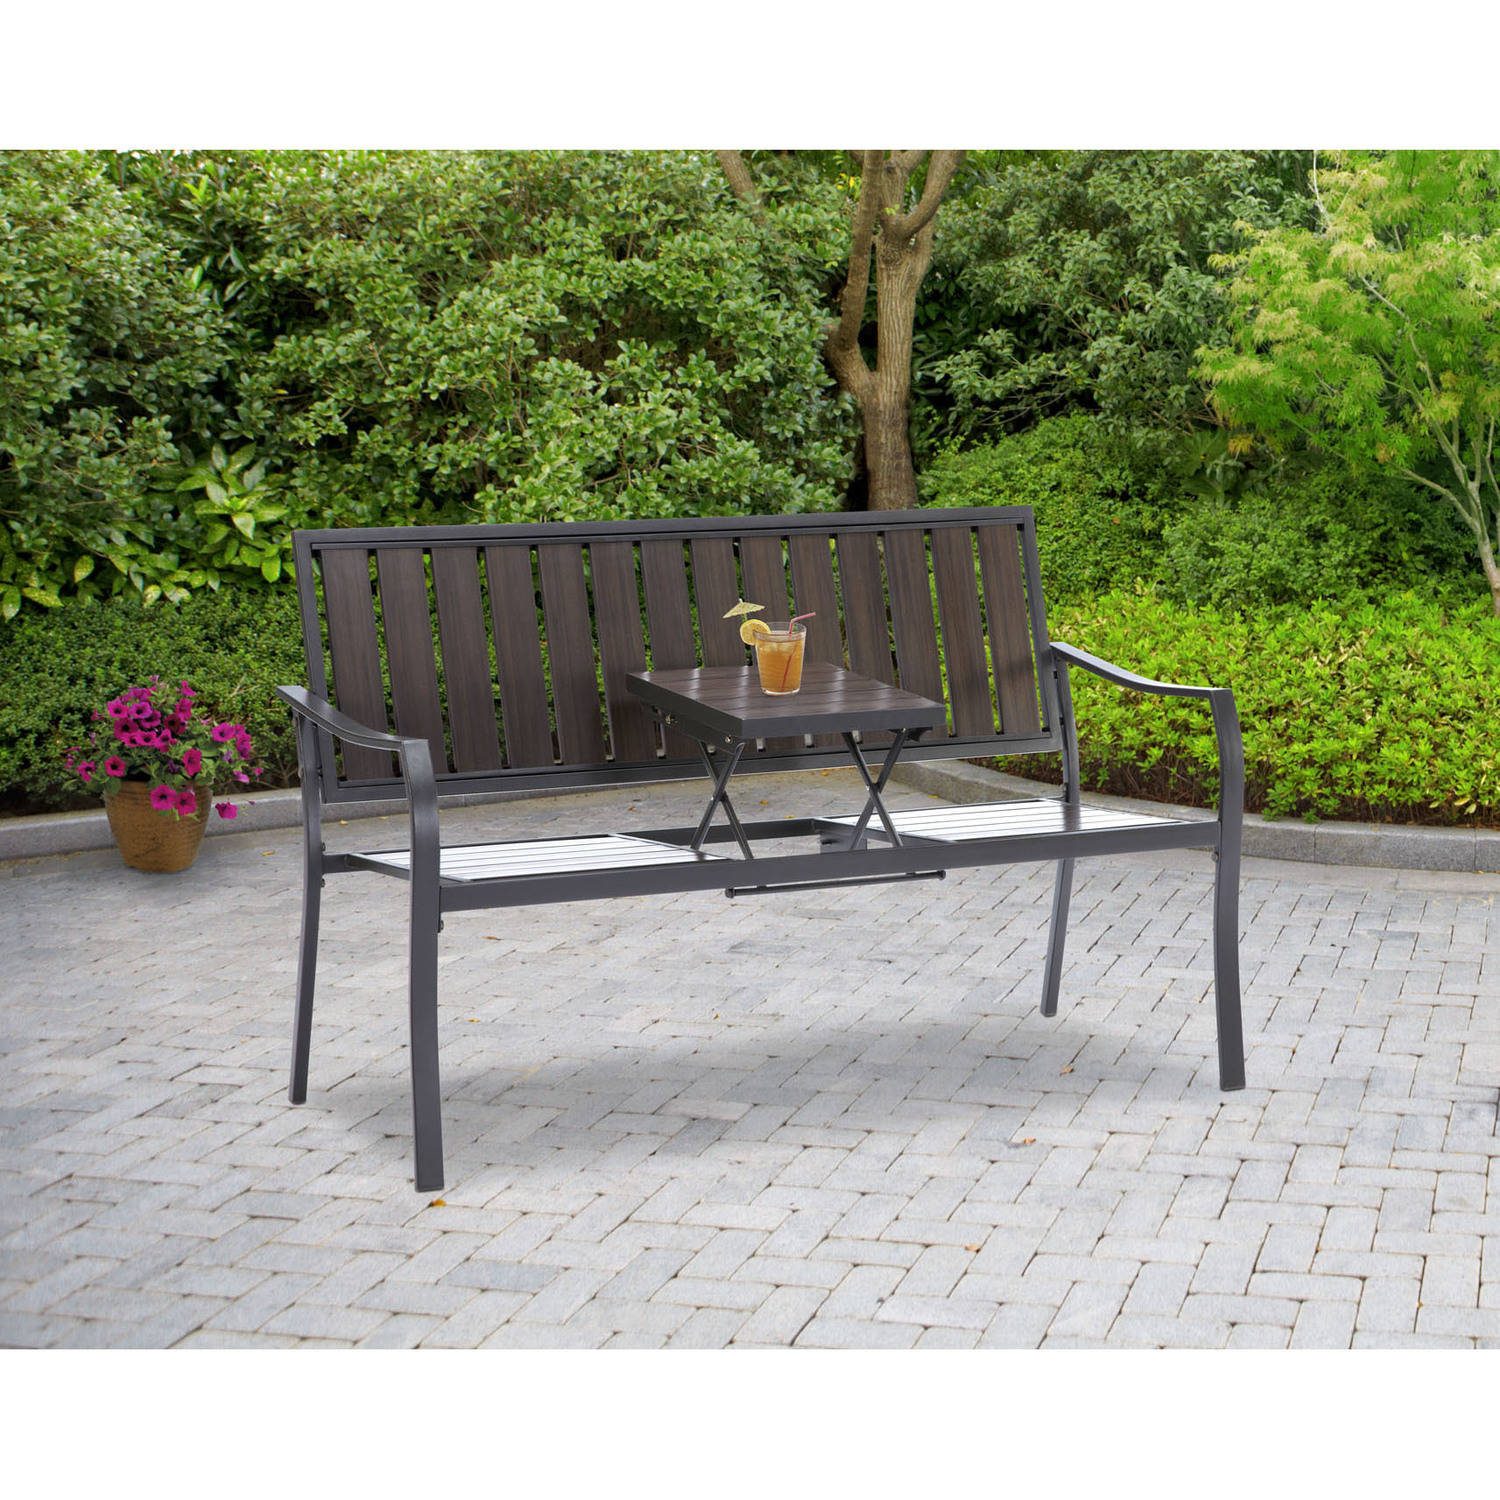 Wood Patio Furniture With Cushions patio furniture - walmart